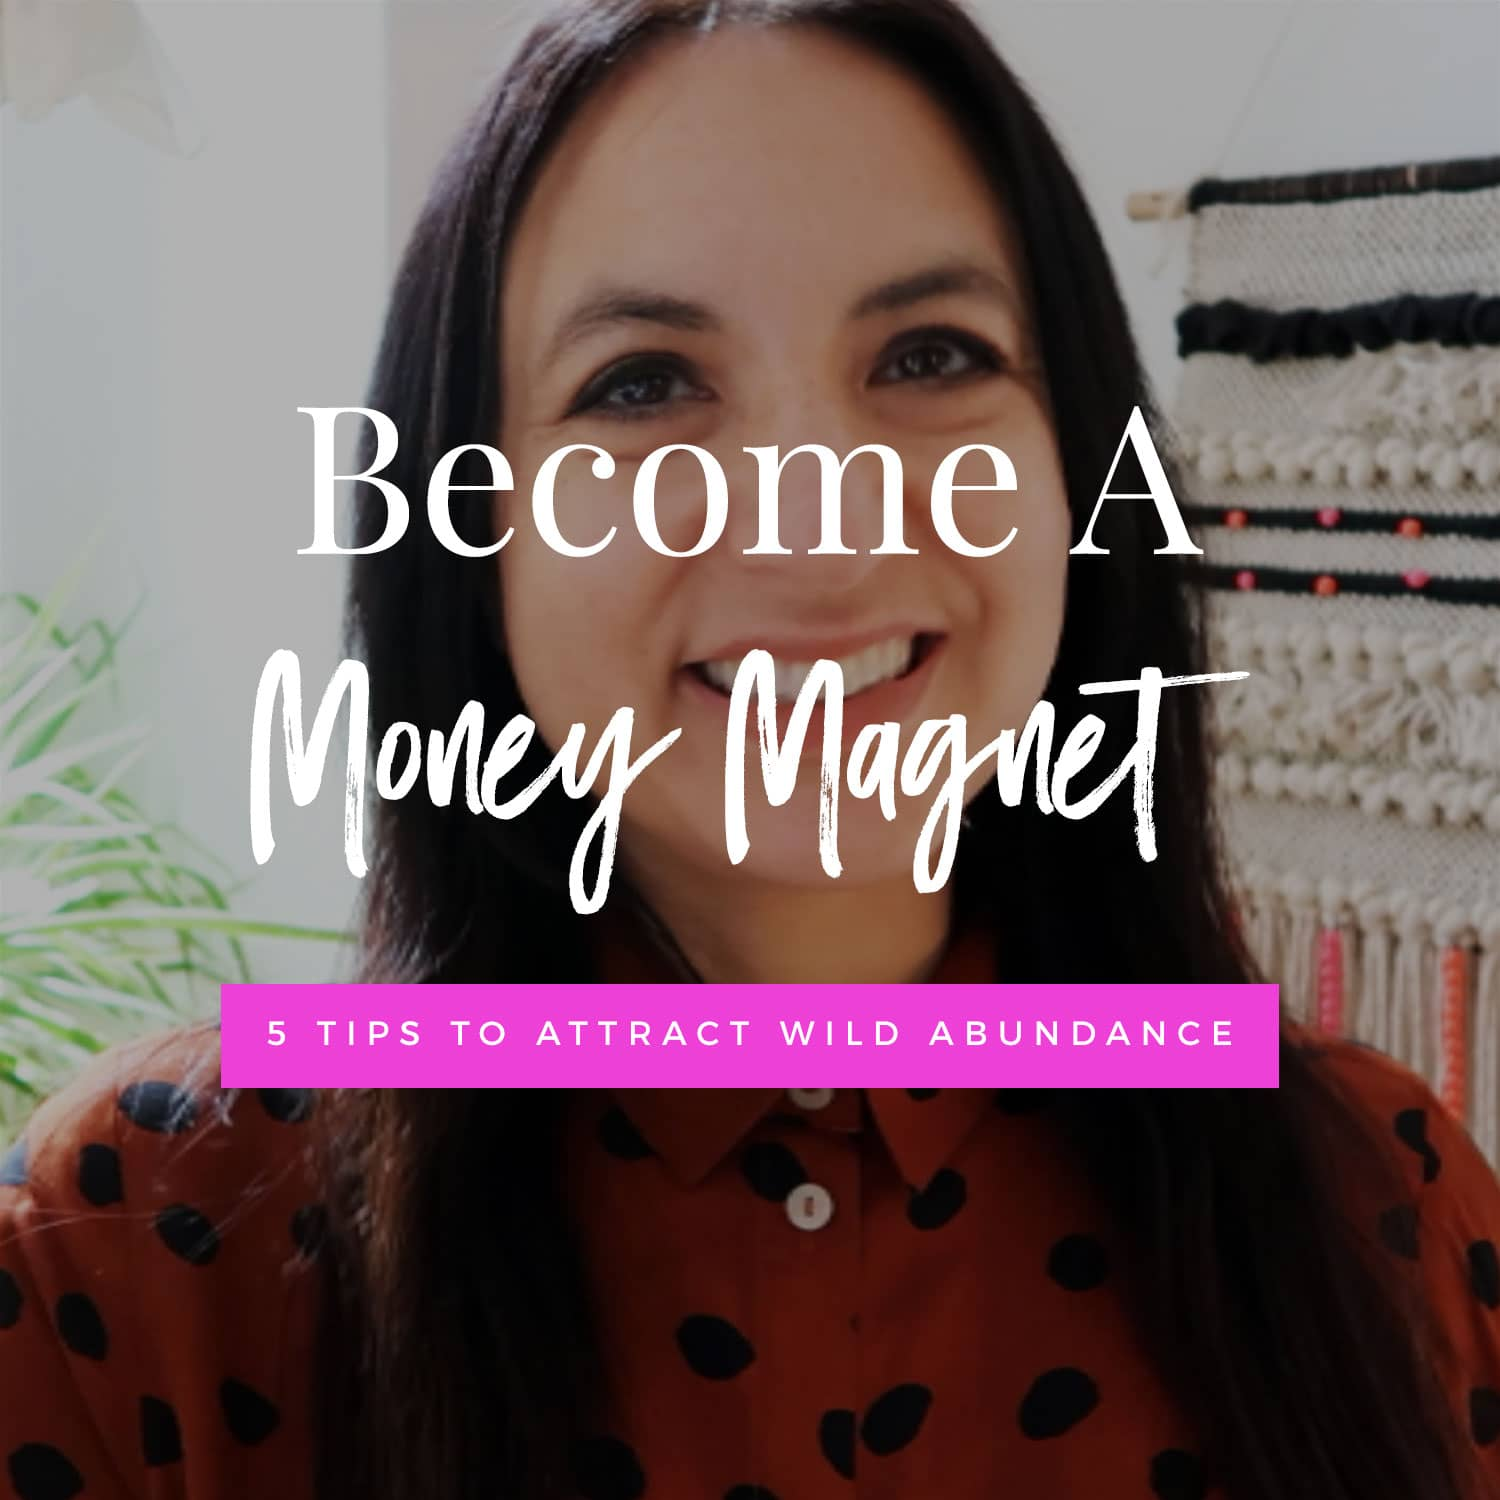 Become A Money Magnet! 5 Tips To Attract Wild Abundance